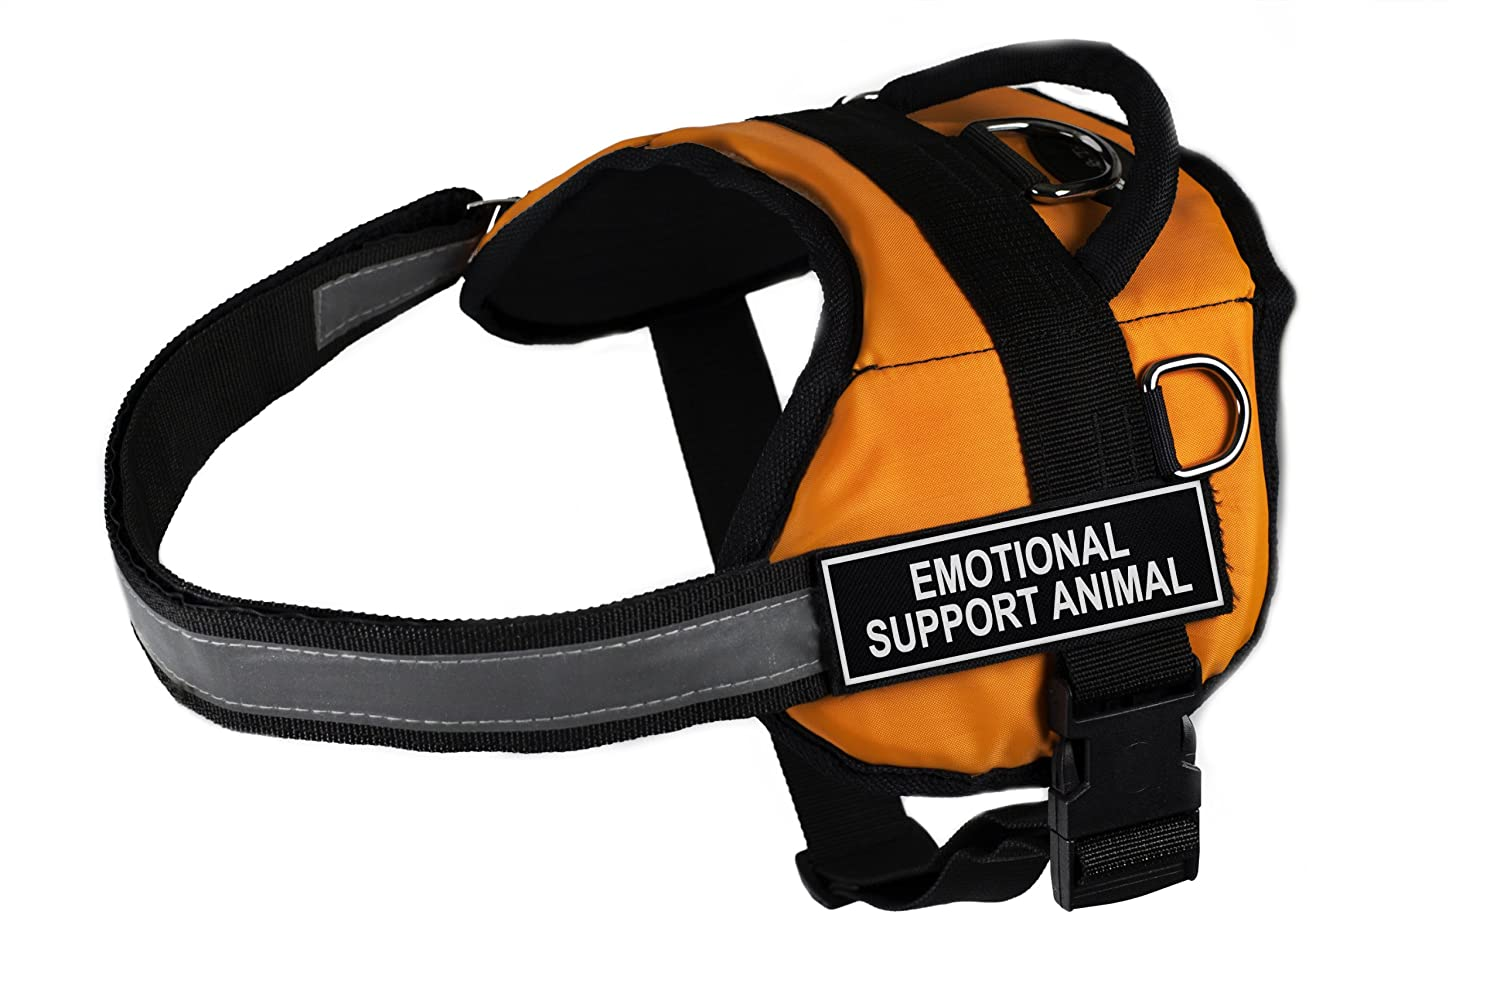 Dean & Tyler Works Emotional Support Animal Pet Harness, Small, Fits Girth Size  25 to 34-Inch, orange Black